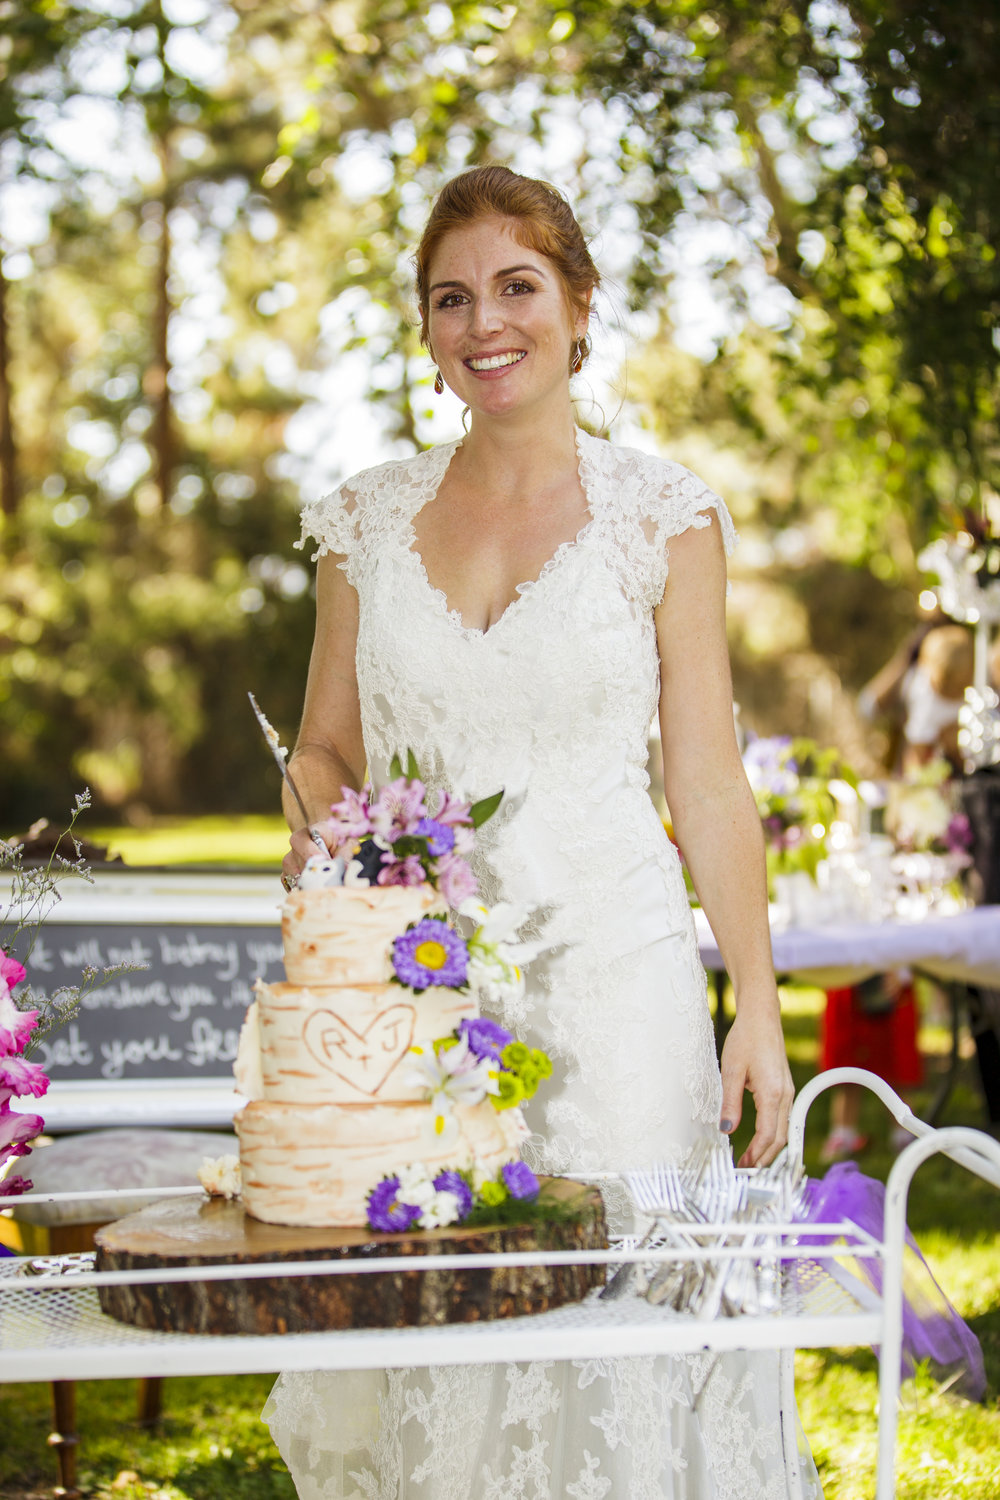 Bride Cutting Cake.jpg